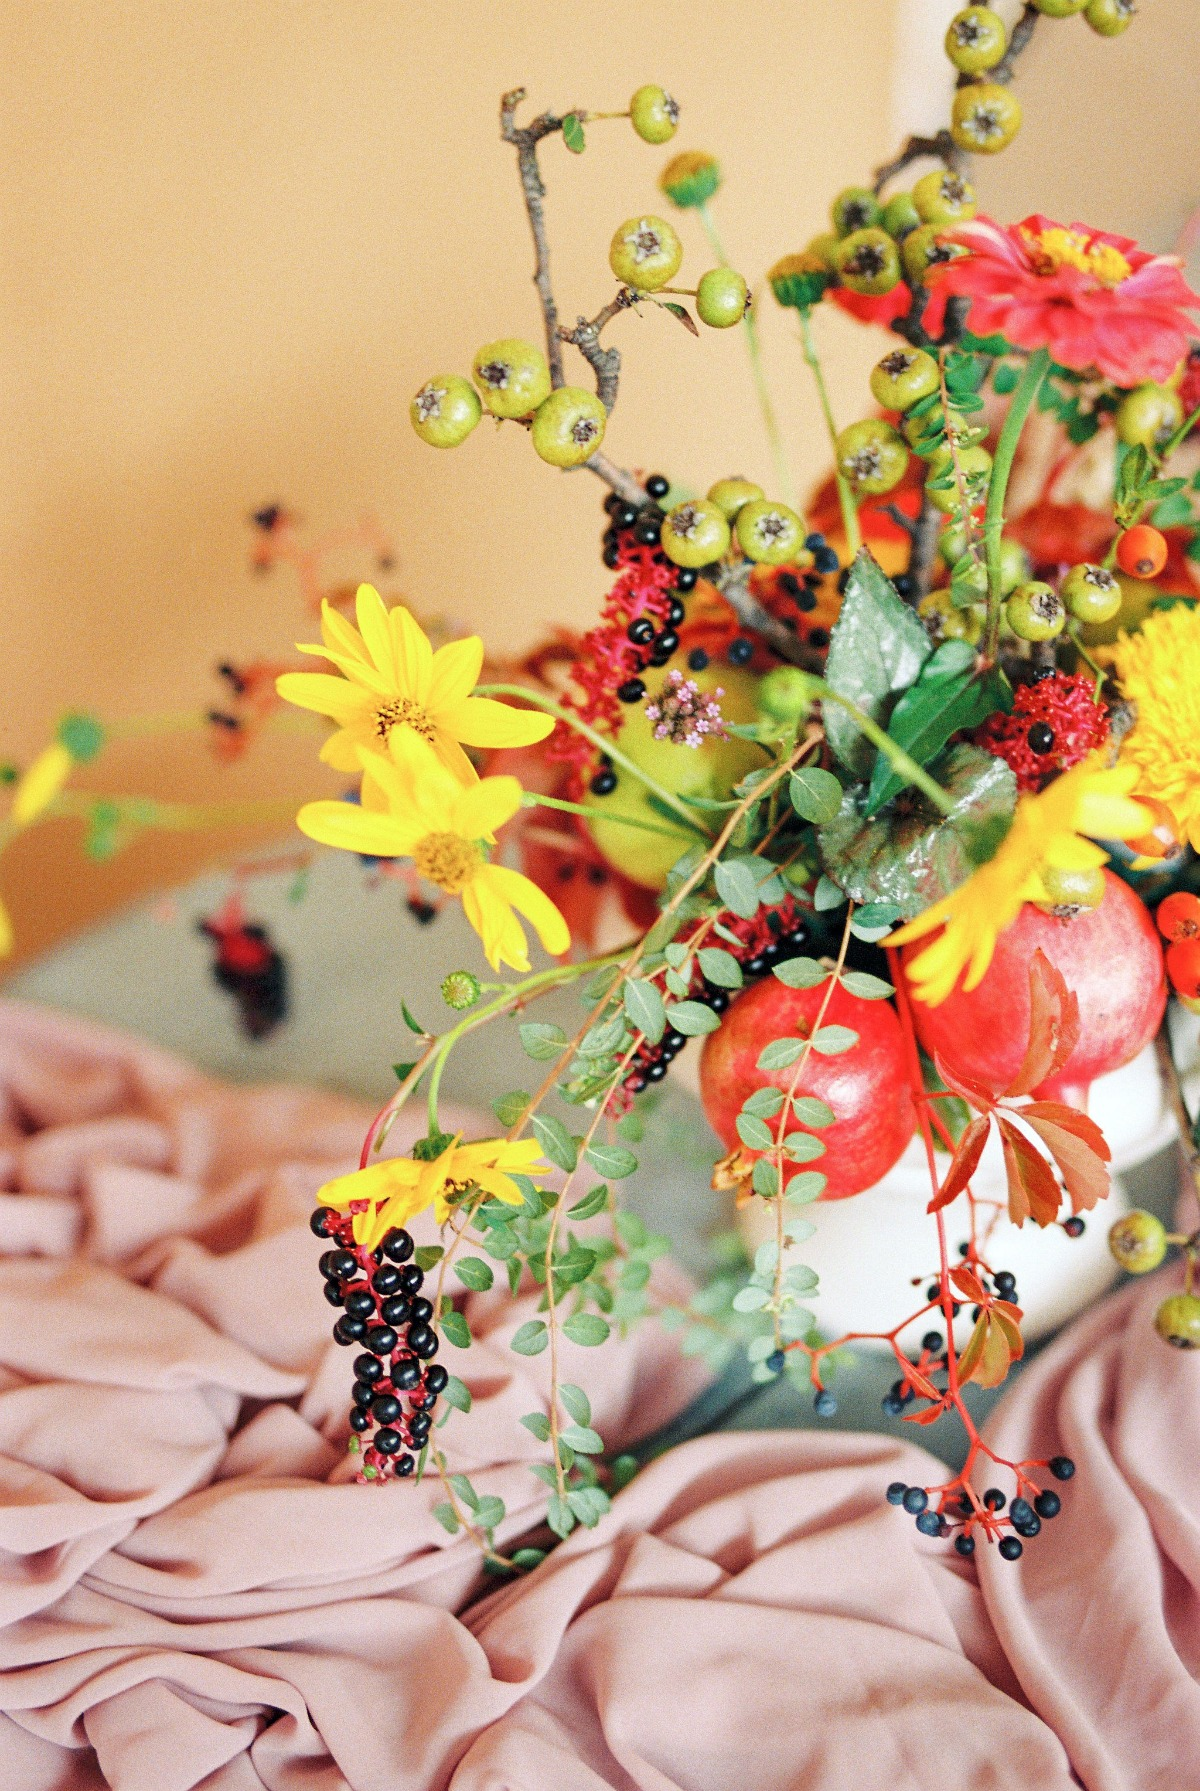 The Bloom Menagerie: Nine Centerpieces that Set the Scene for a Festive Season